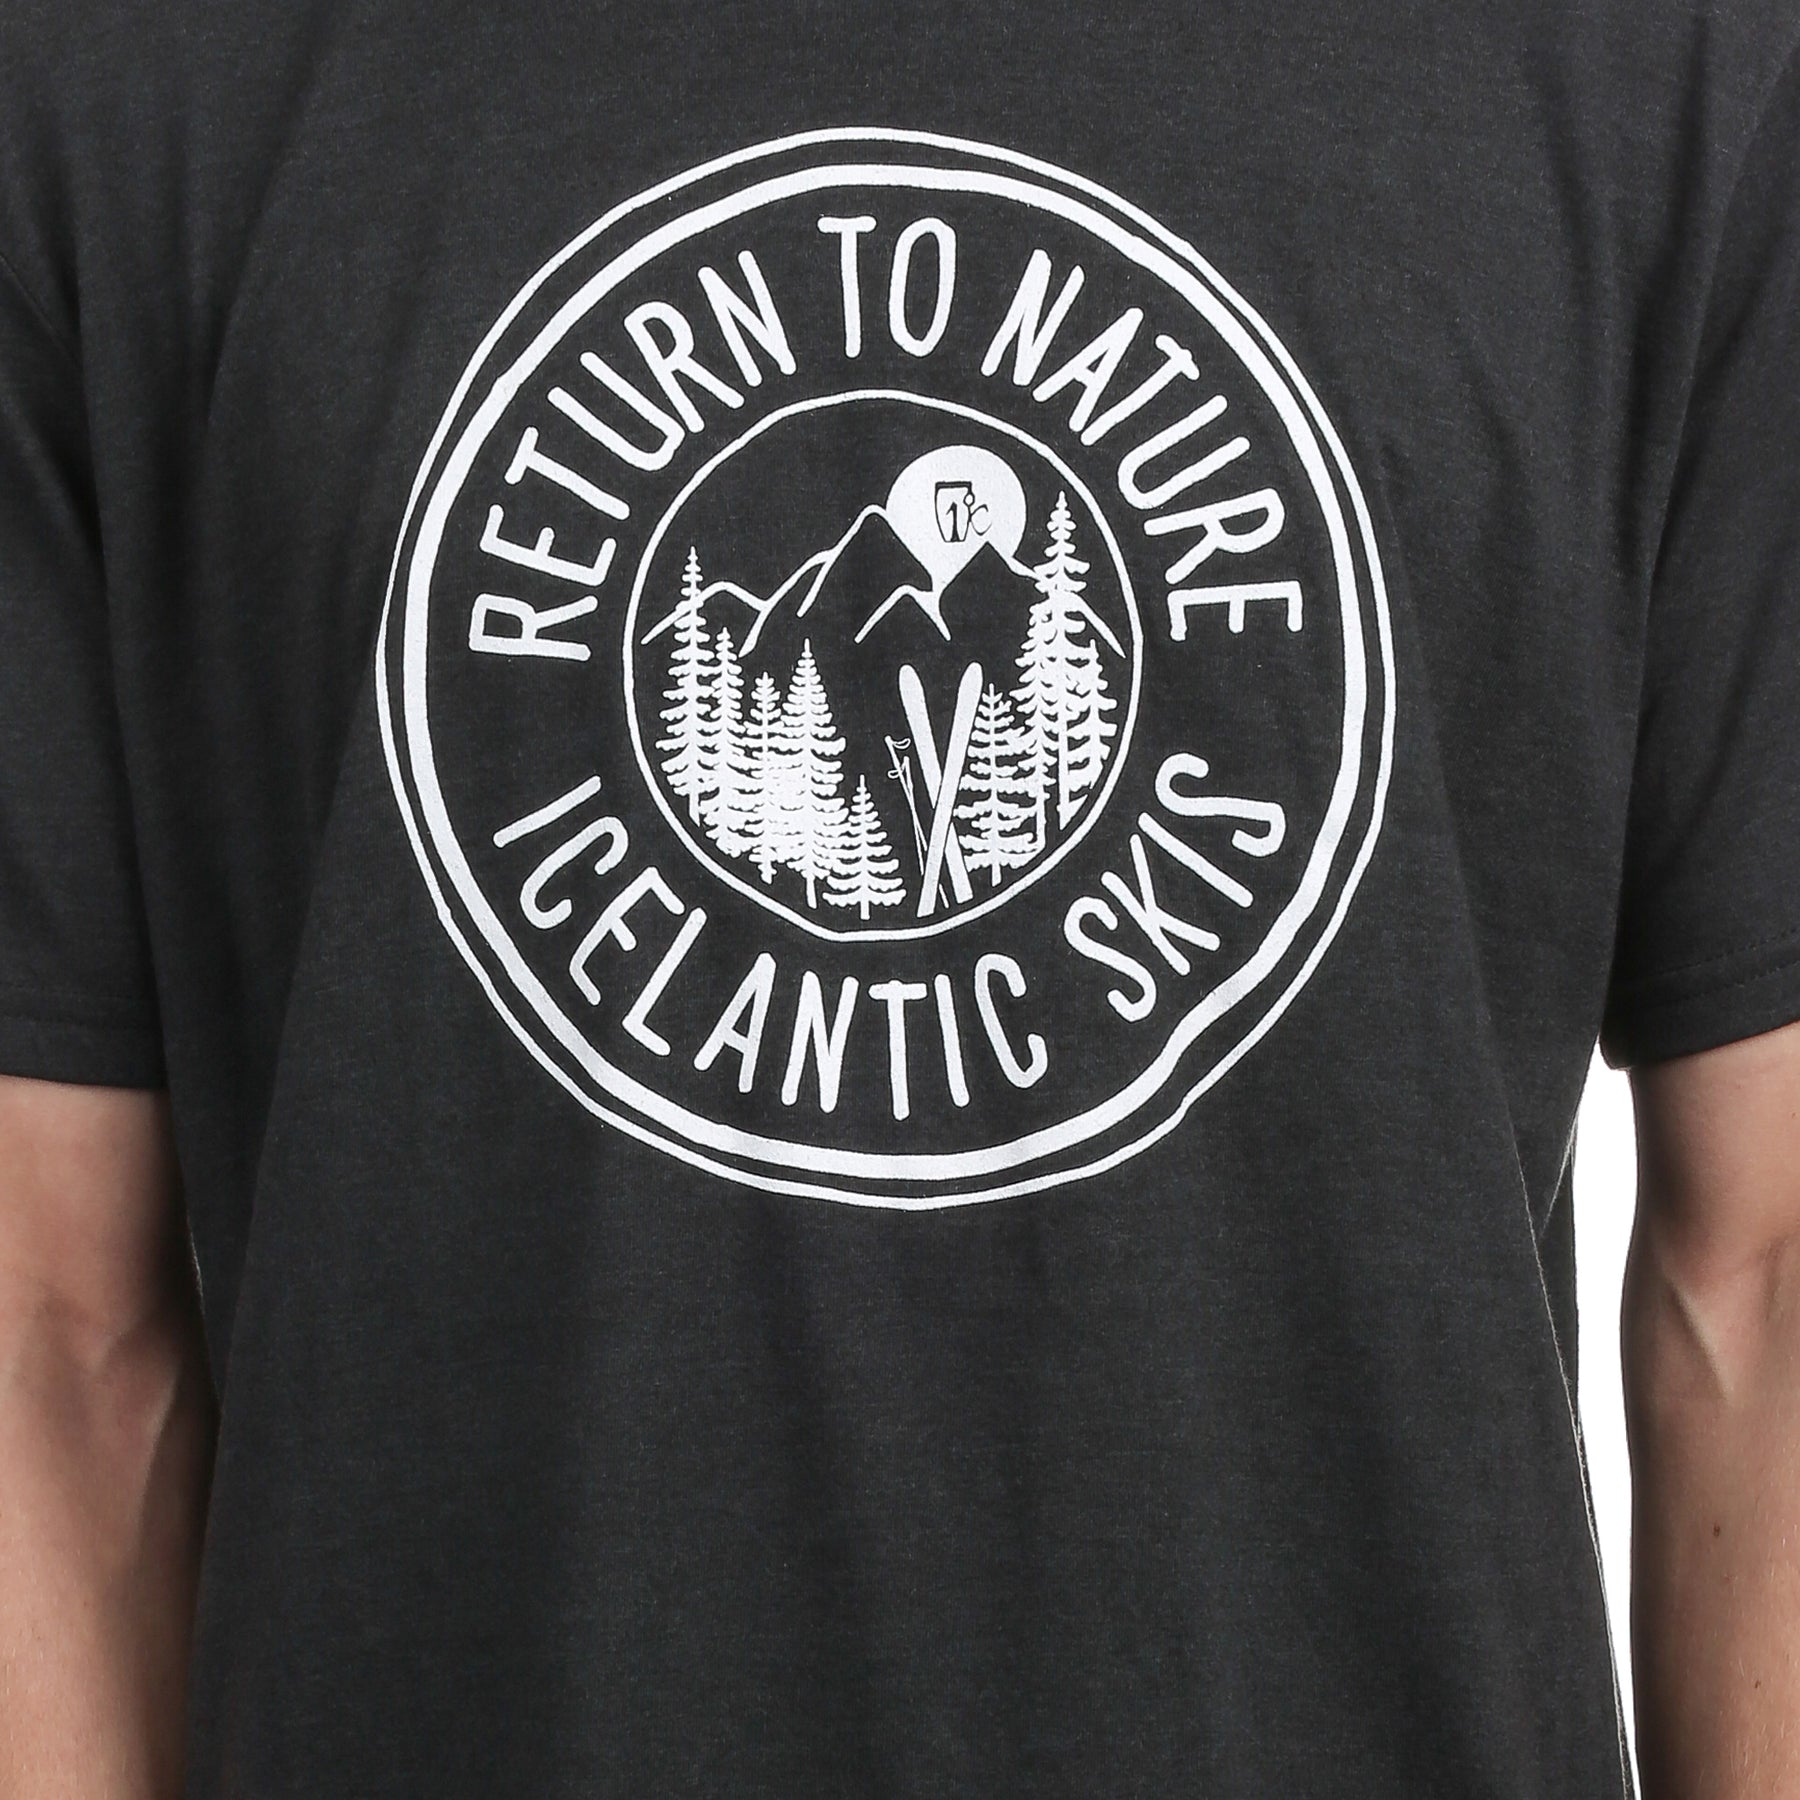 Return To Nature Tee